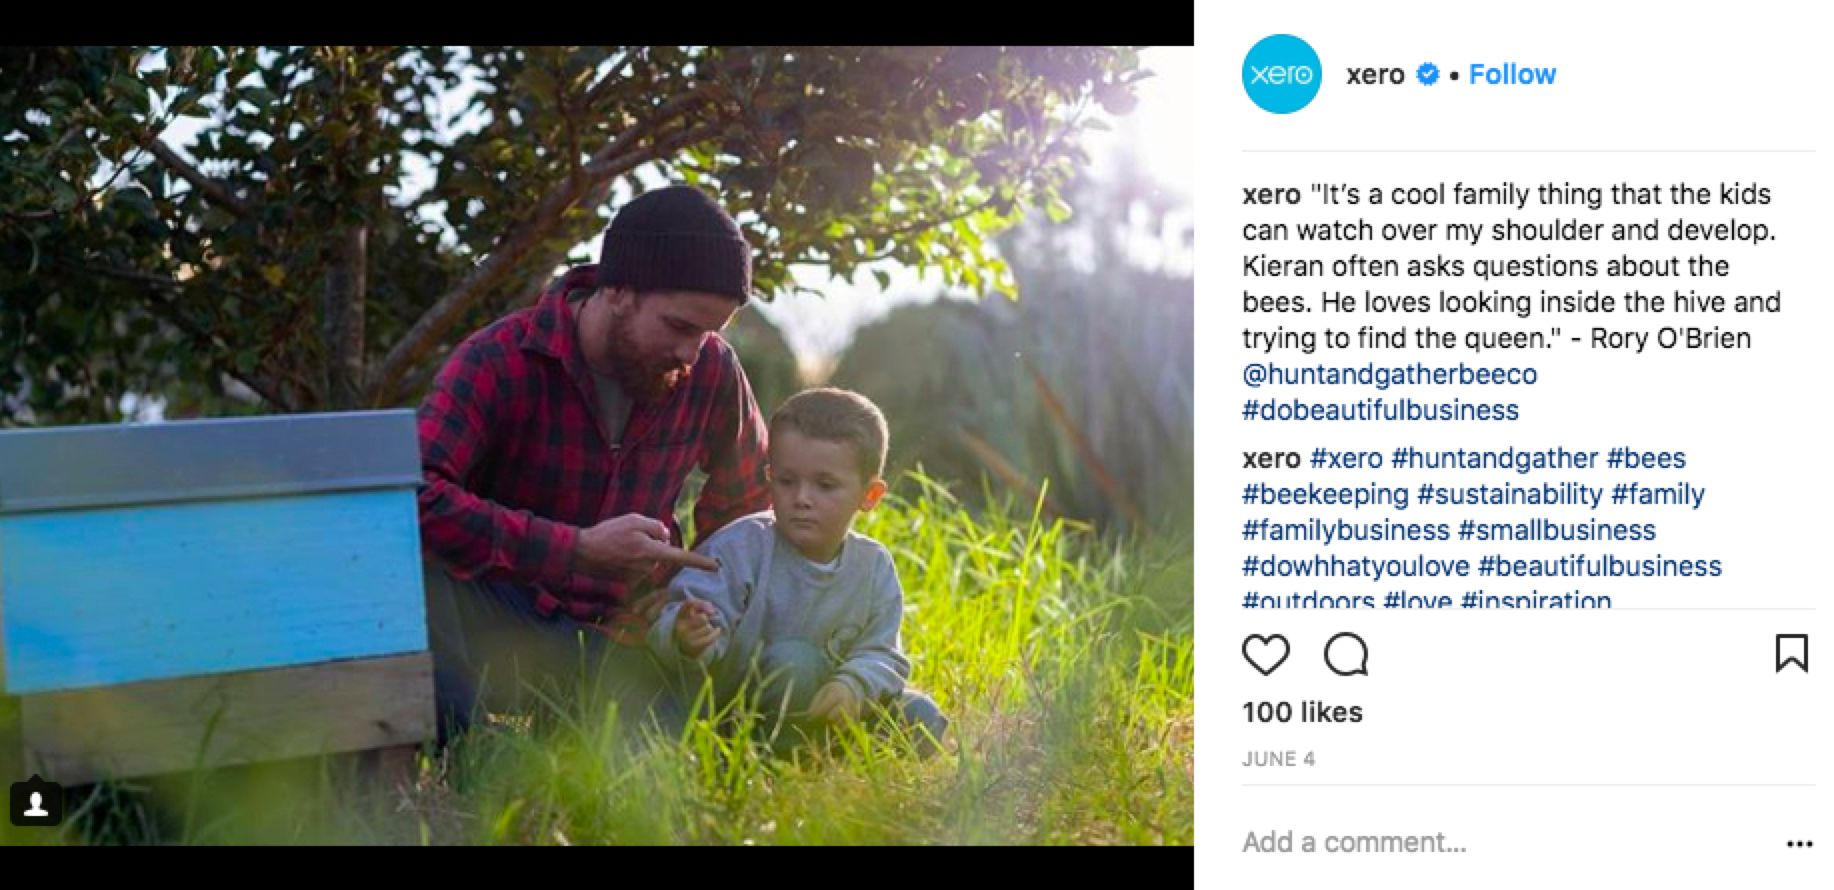 Xero Instagram post showing customer story